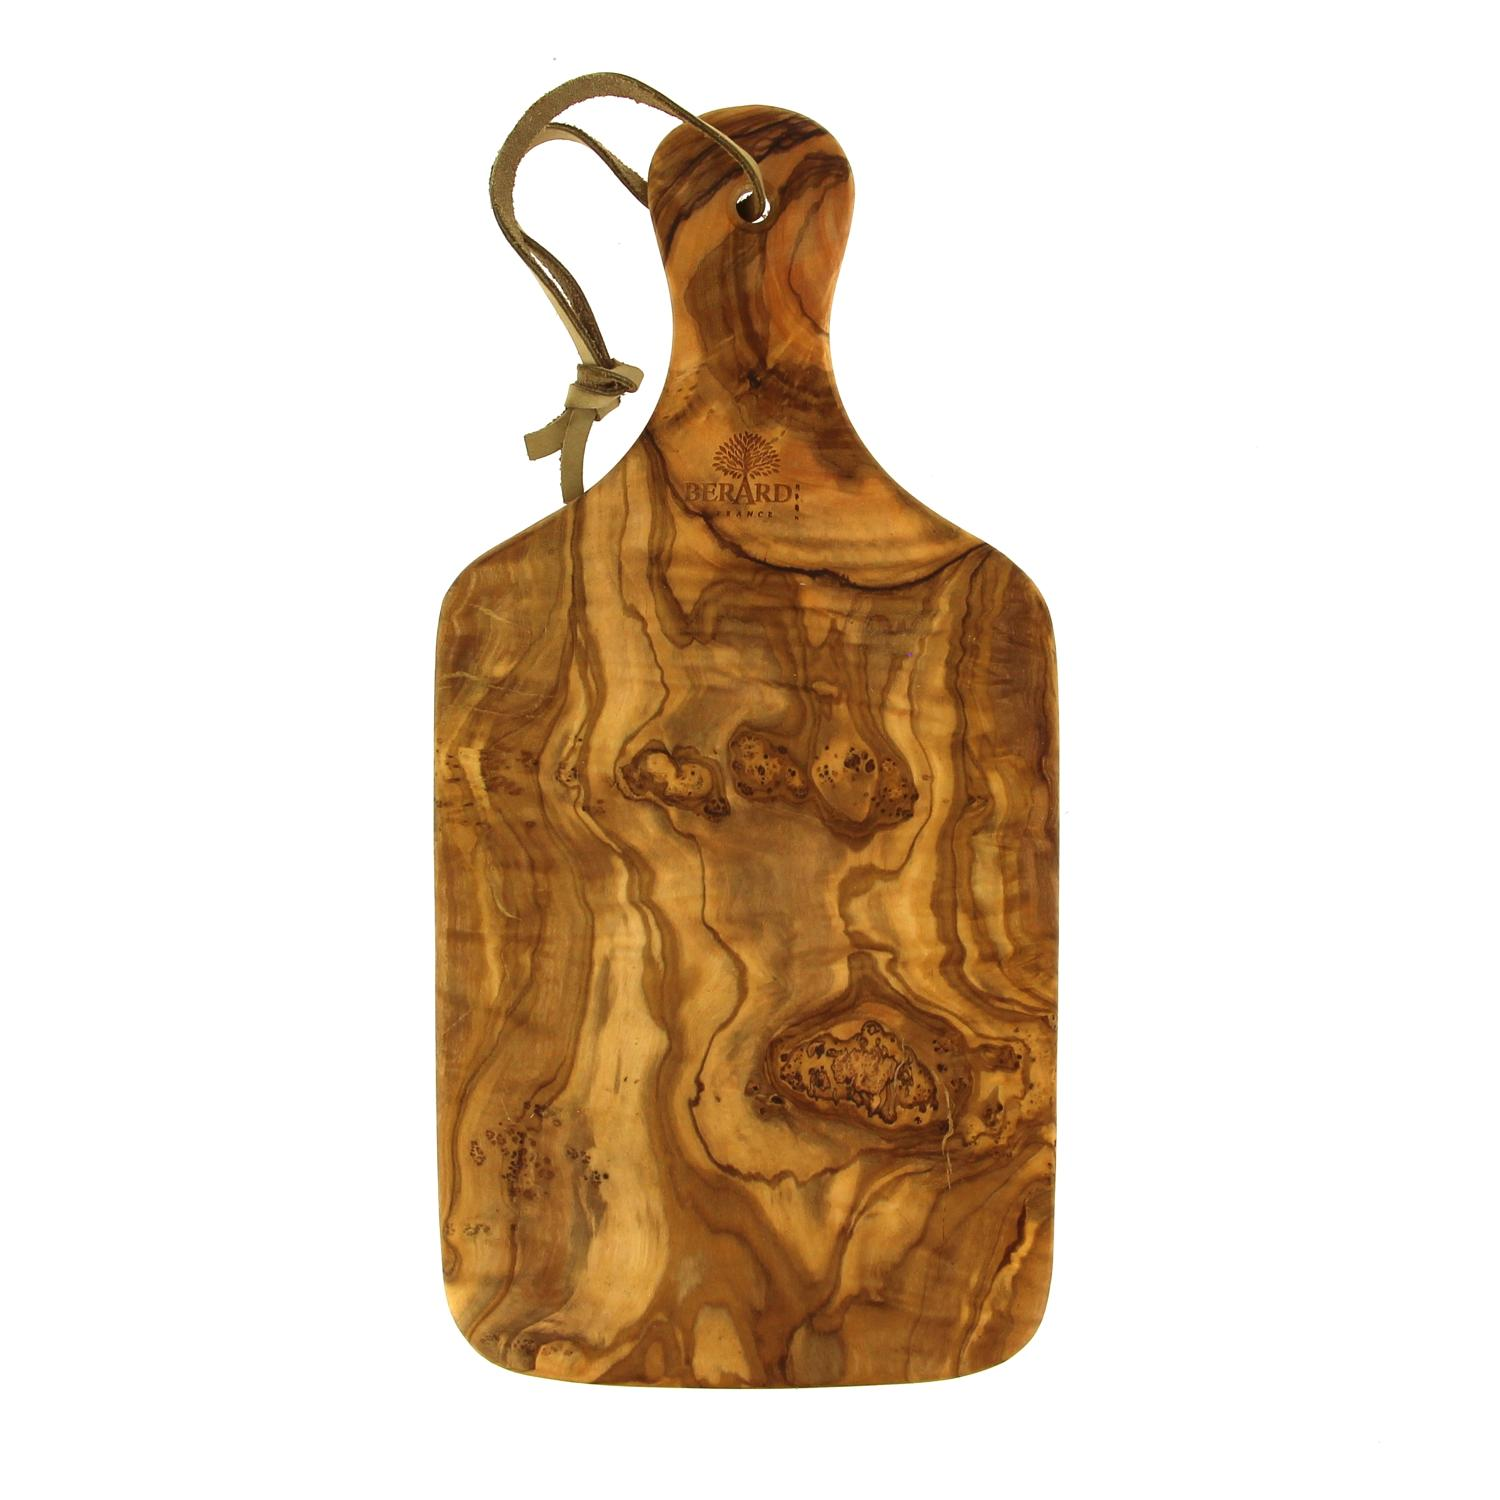 Chopping Board in Olive wood with handle - Large